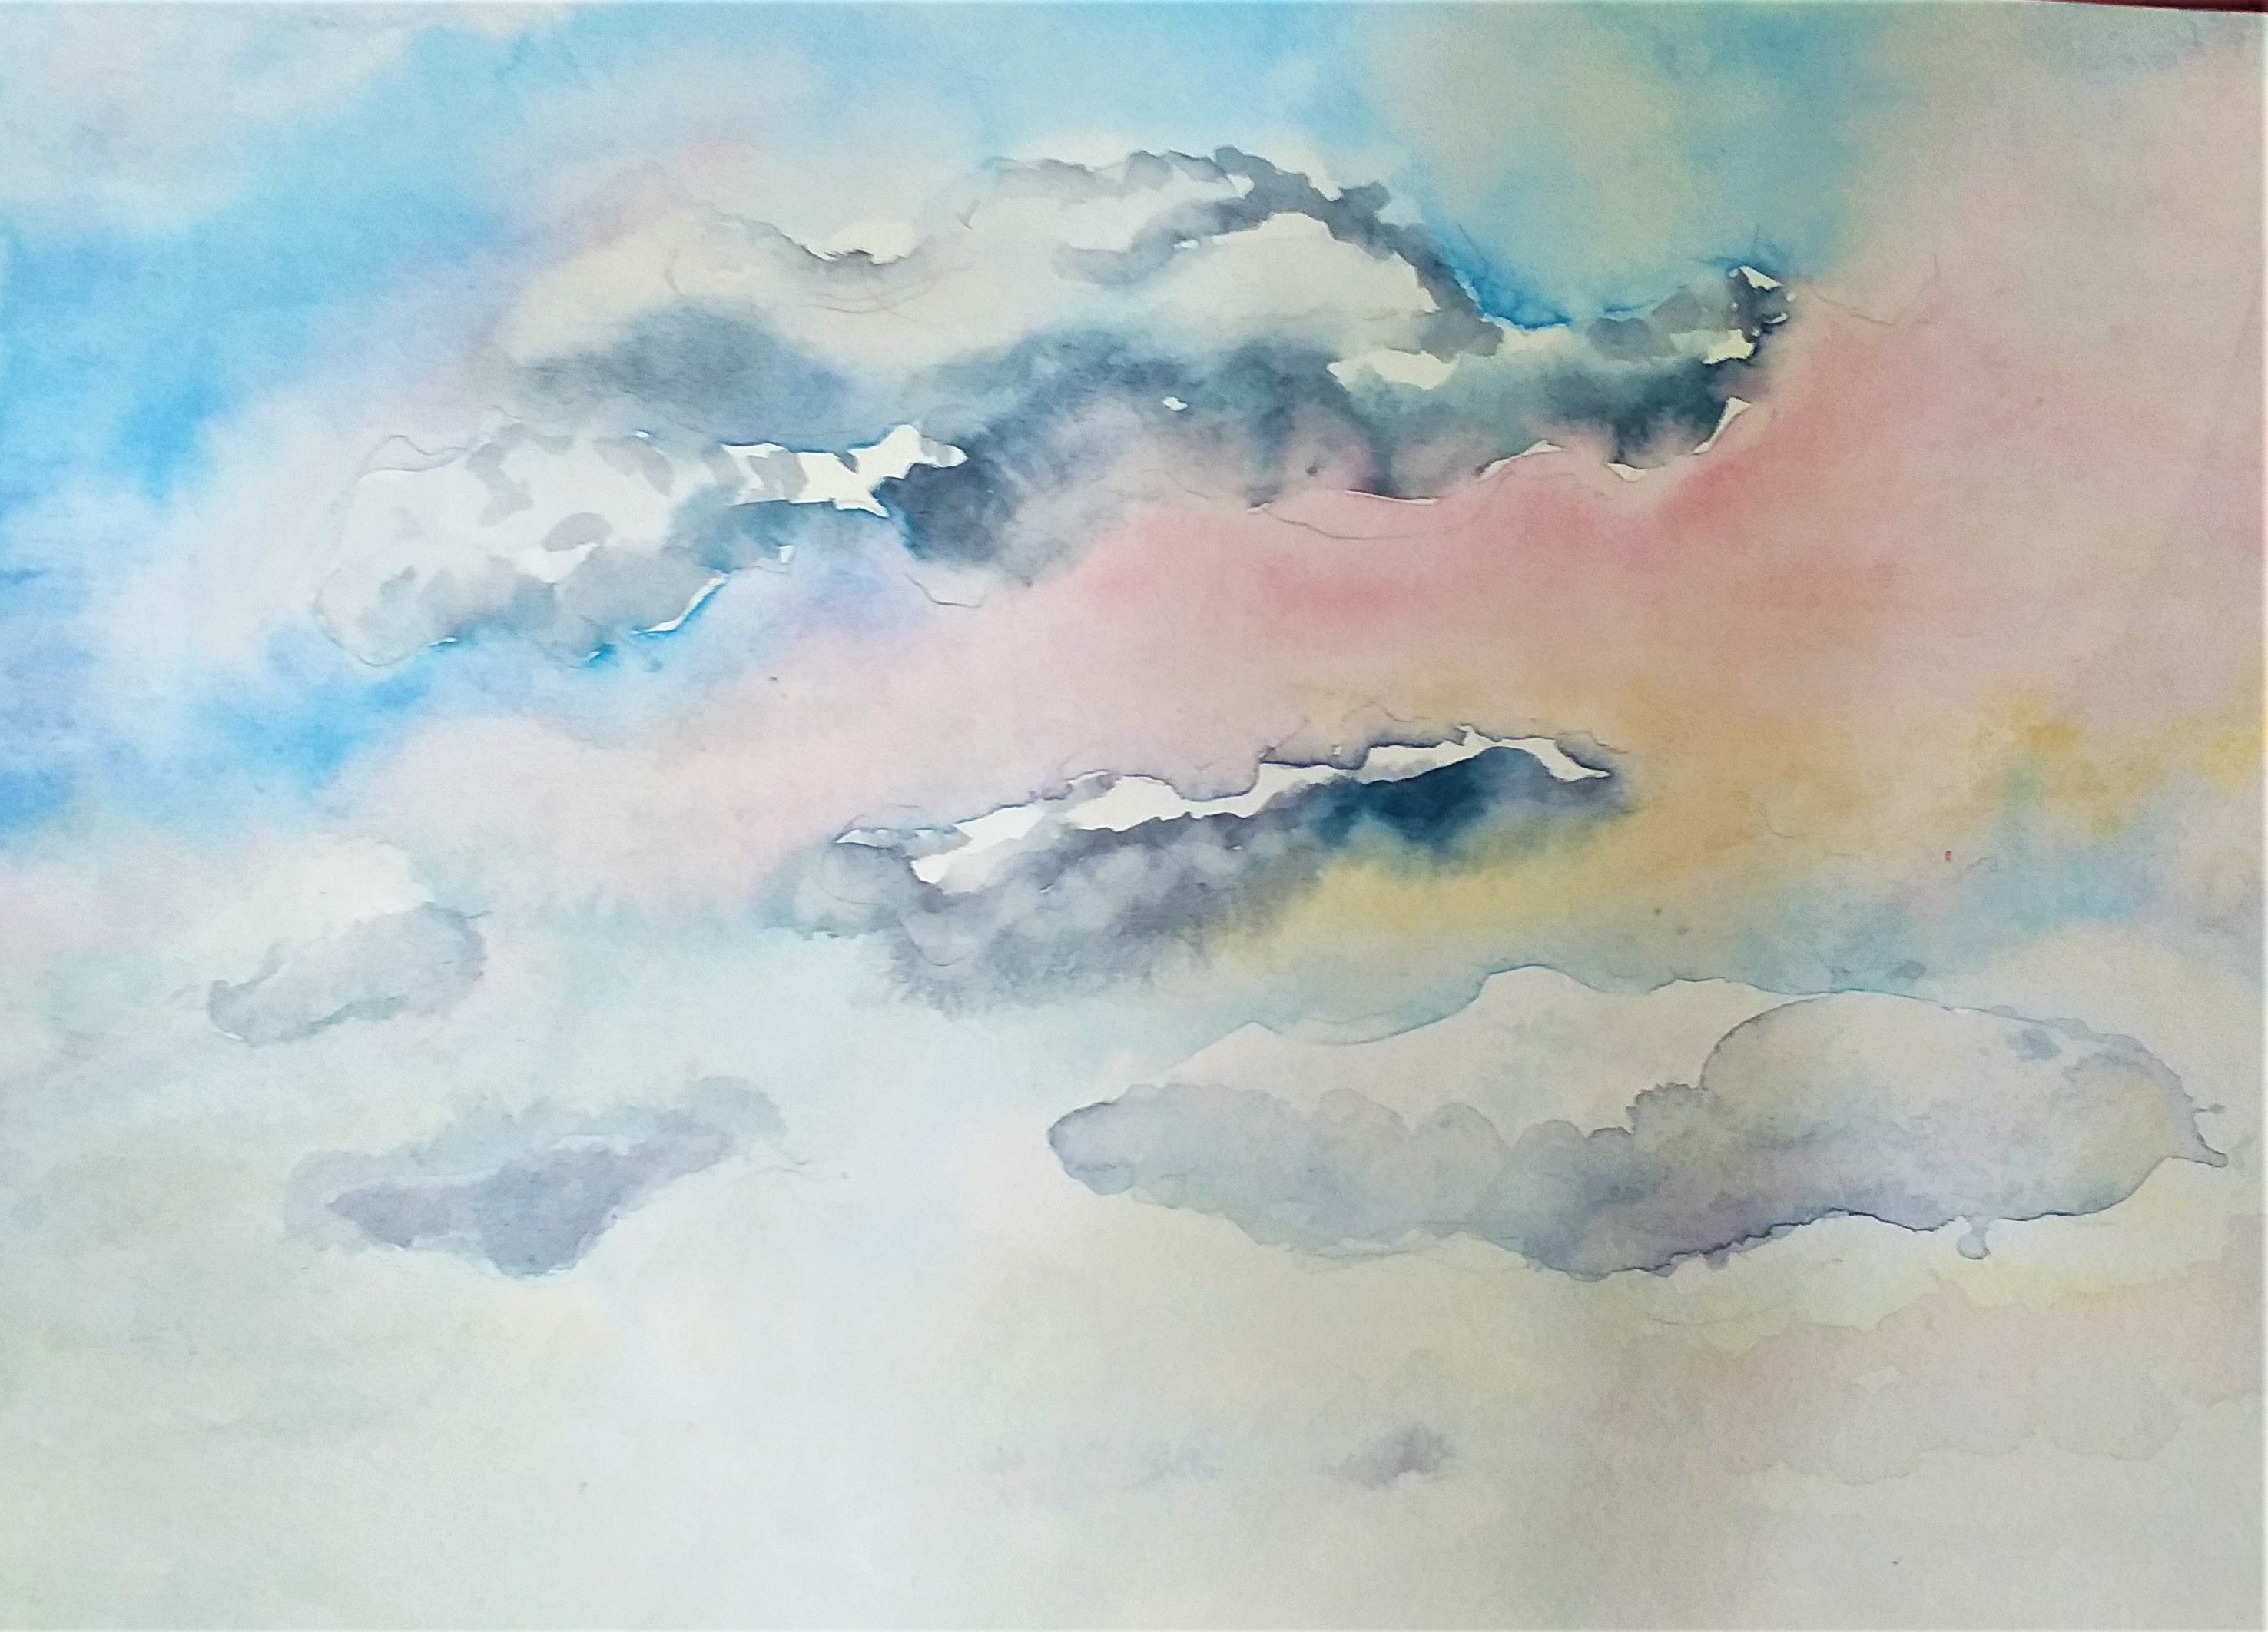 Watercolour created at Raya's watercolour class in Worcestershire.